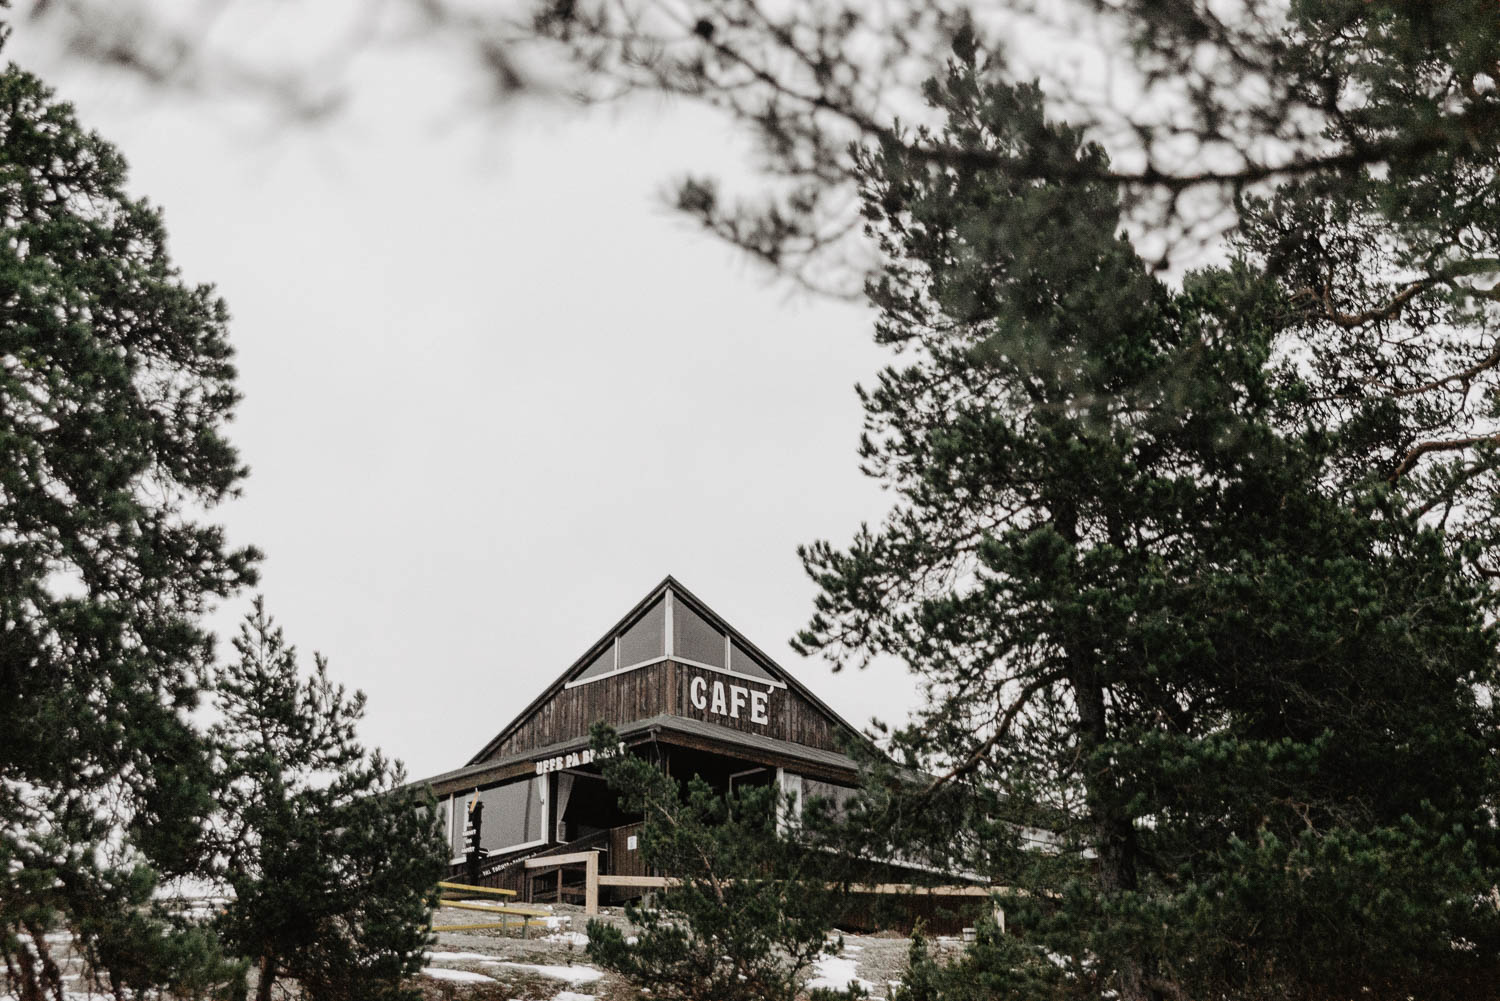 Café Uffe på Berget |Things to do in the Åland Islands